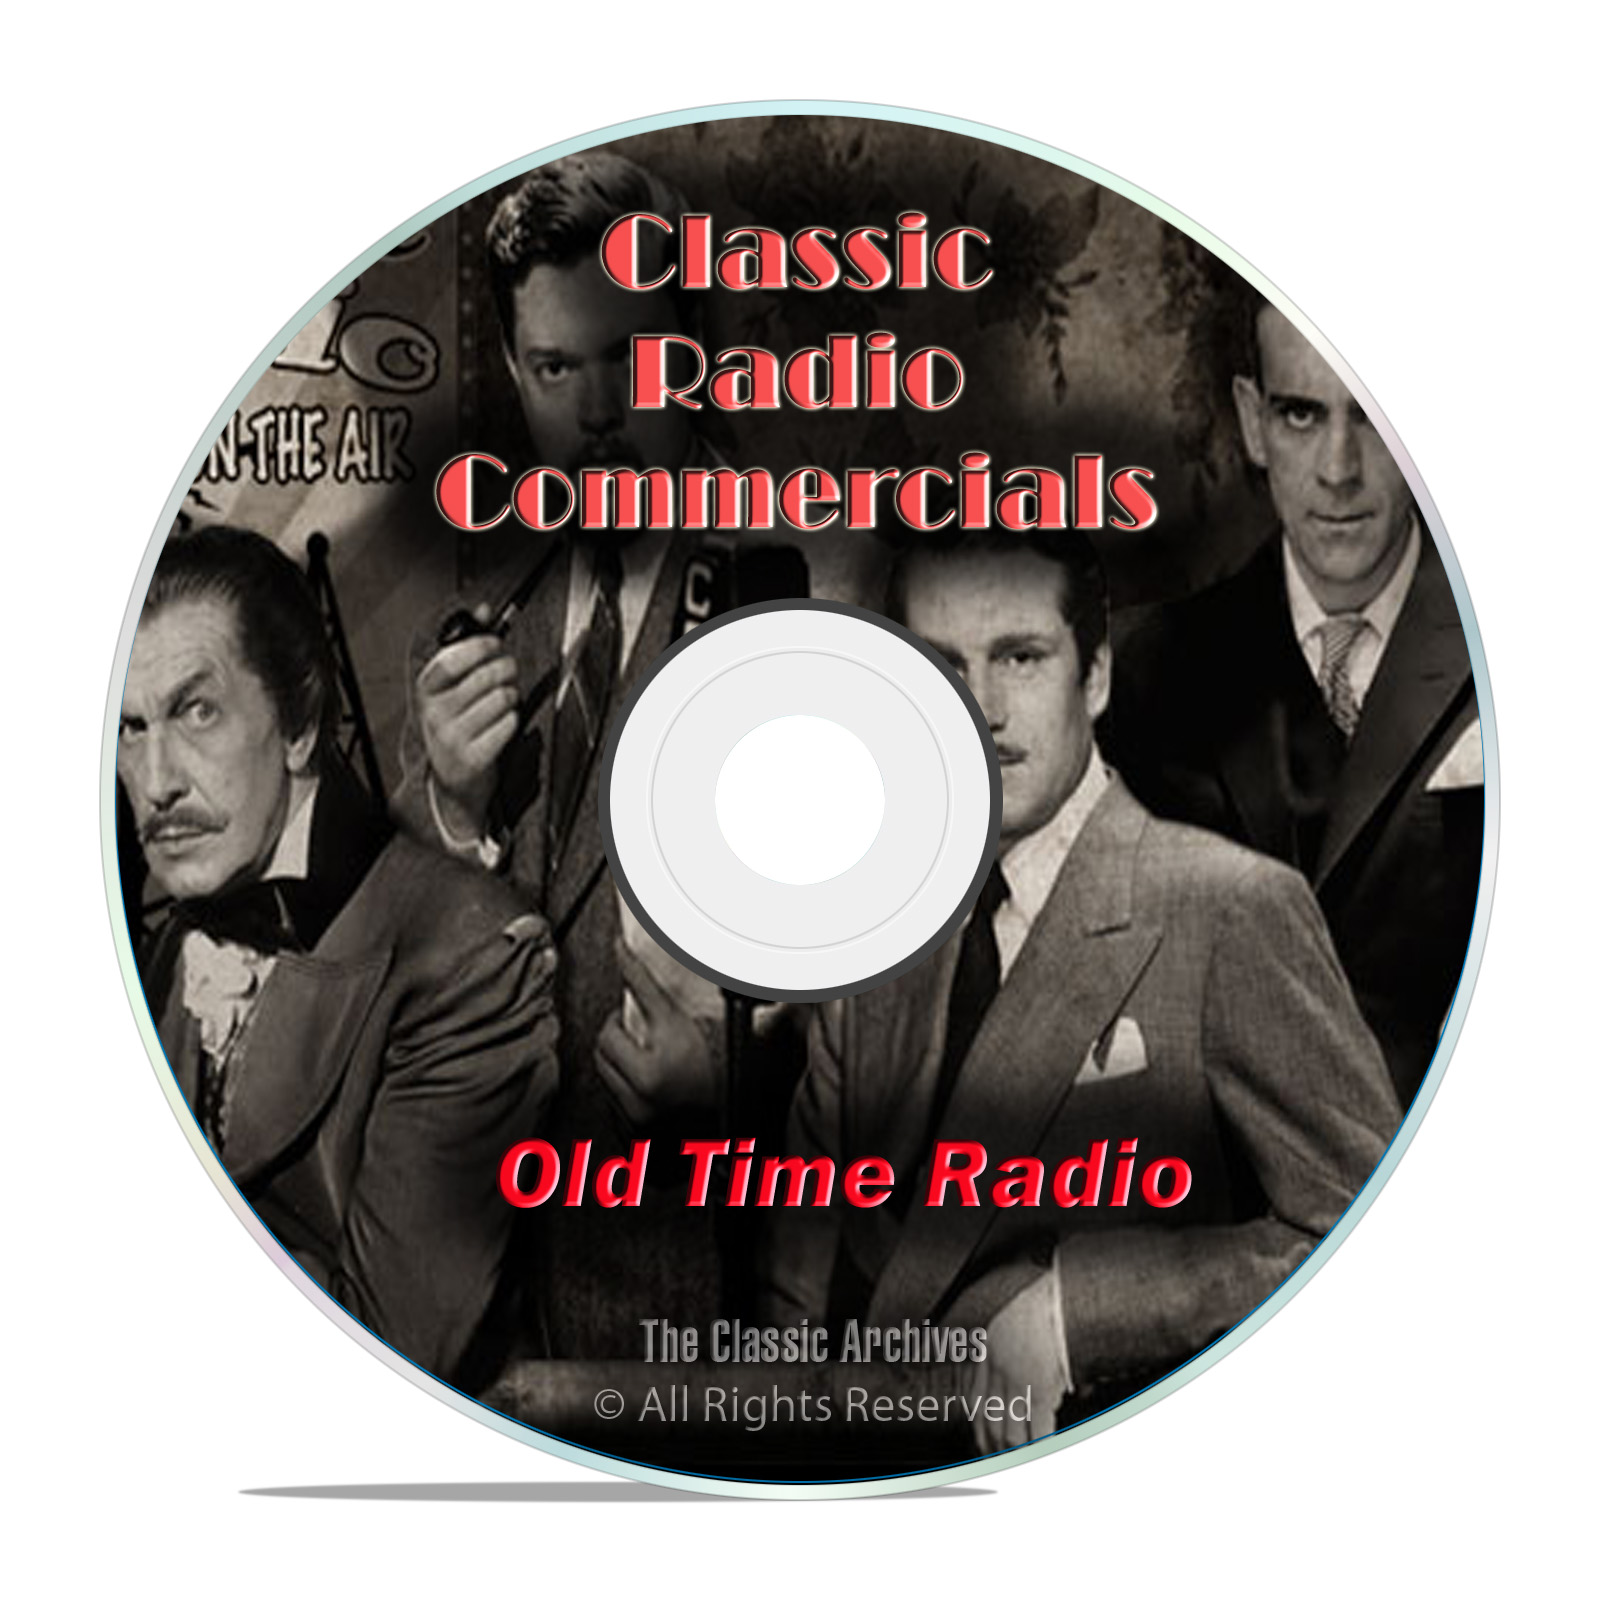 1,483 Classic Old Time Radio Commericals, Ads, Advertisments mp3 OTR DVD